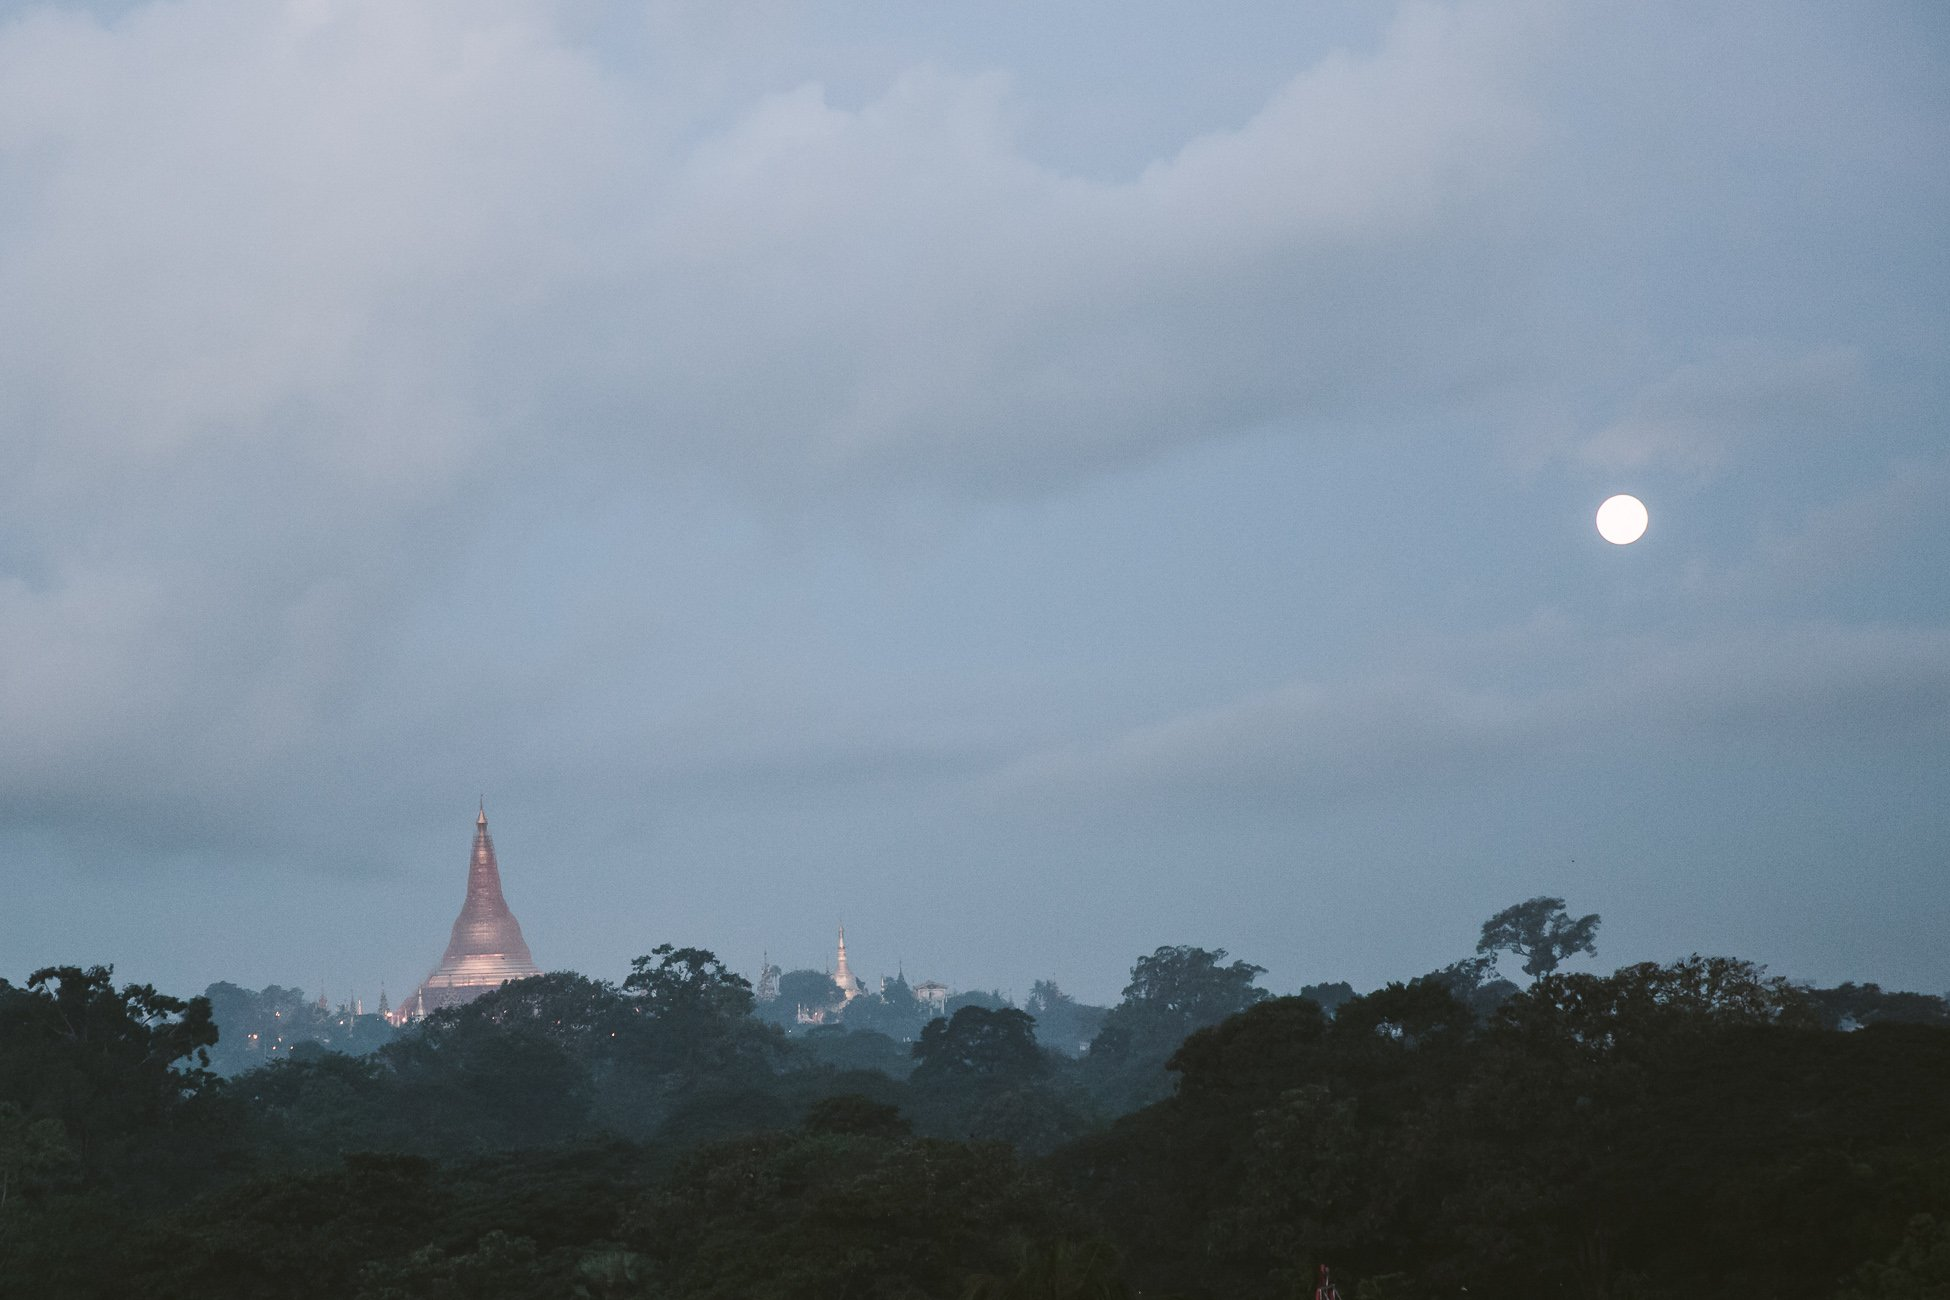 Shwedagon Pagoda at full moon